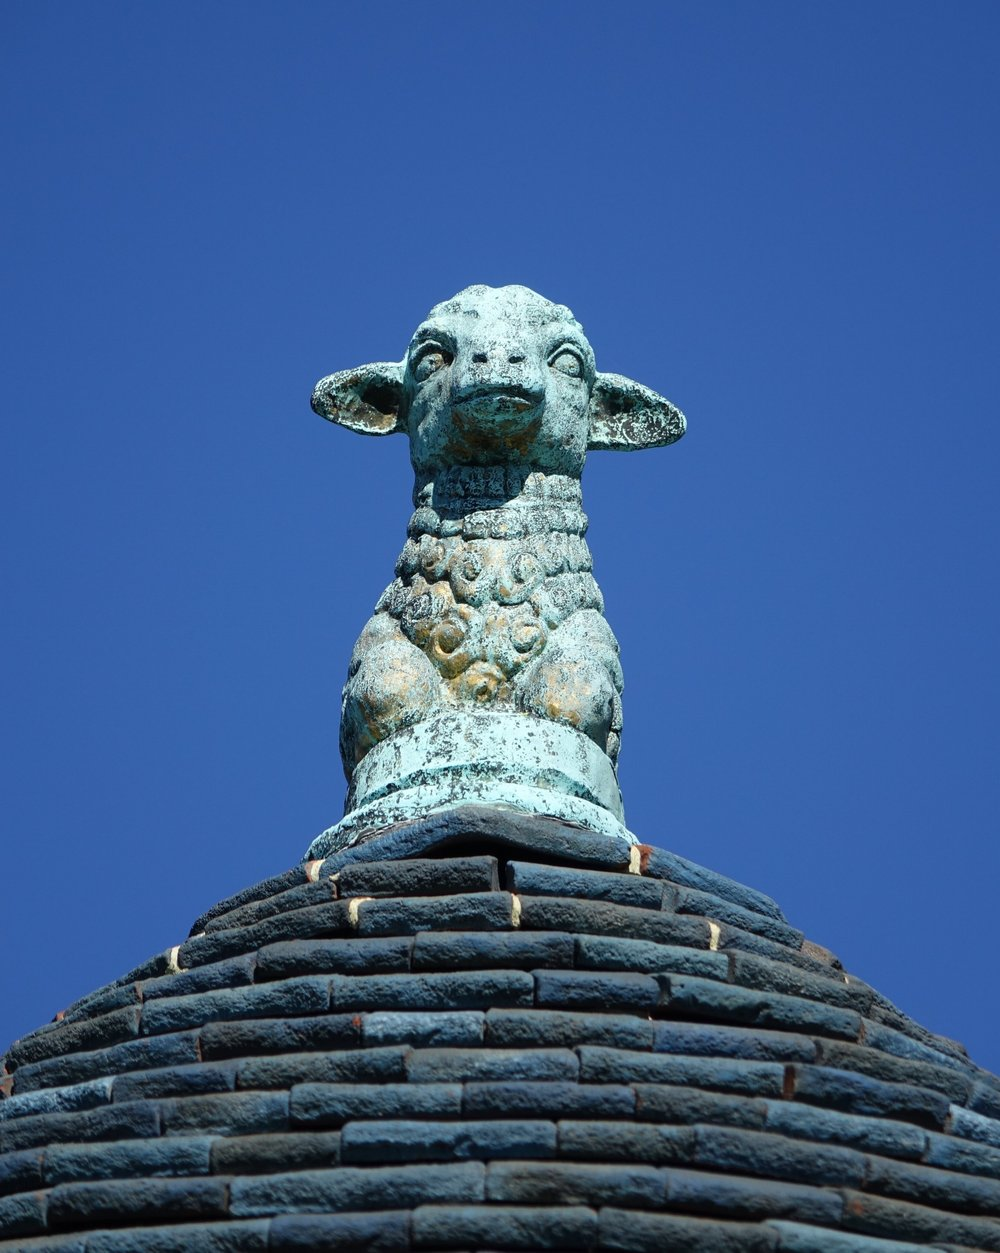 Figure 3: This metalwork lamb sculpture is perched on top of the roof of the upstairs living room.